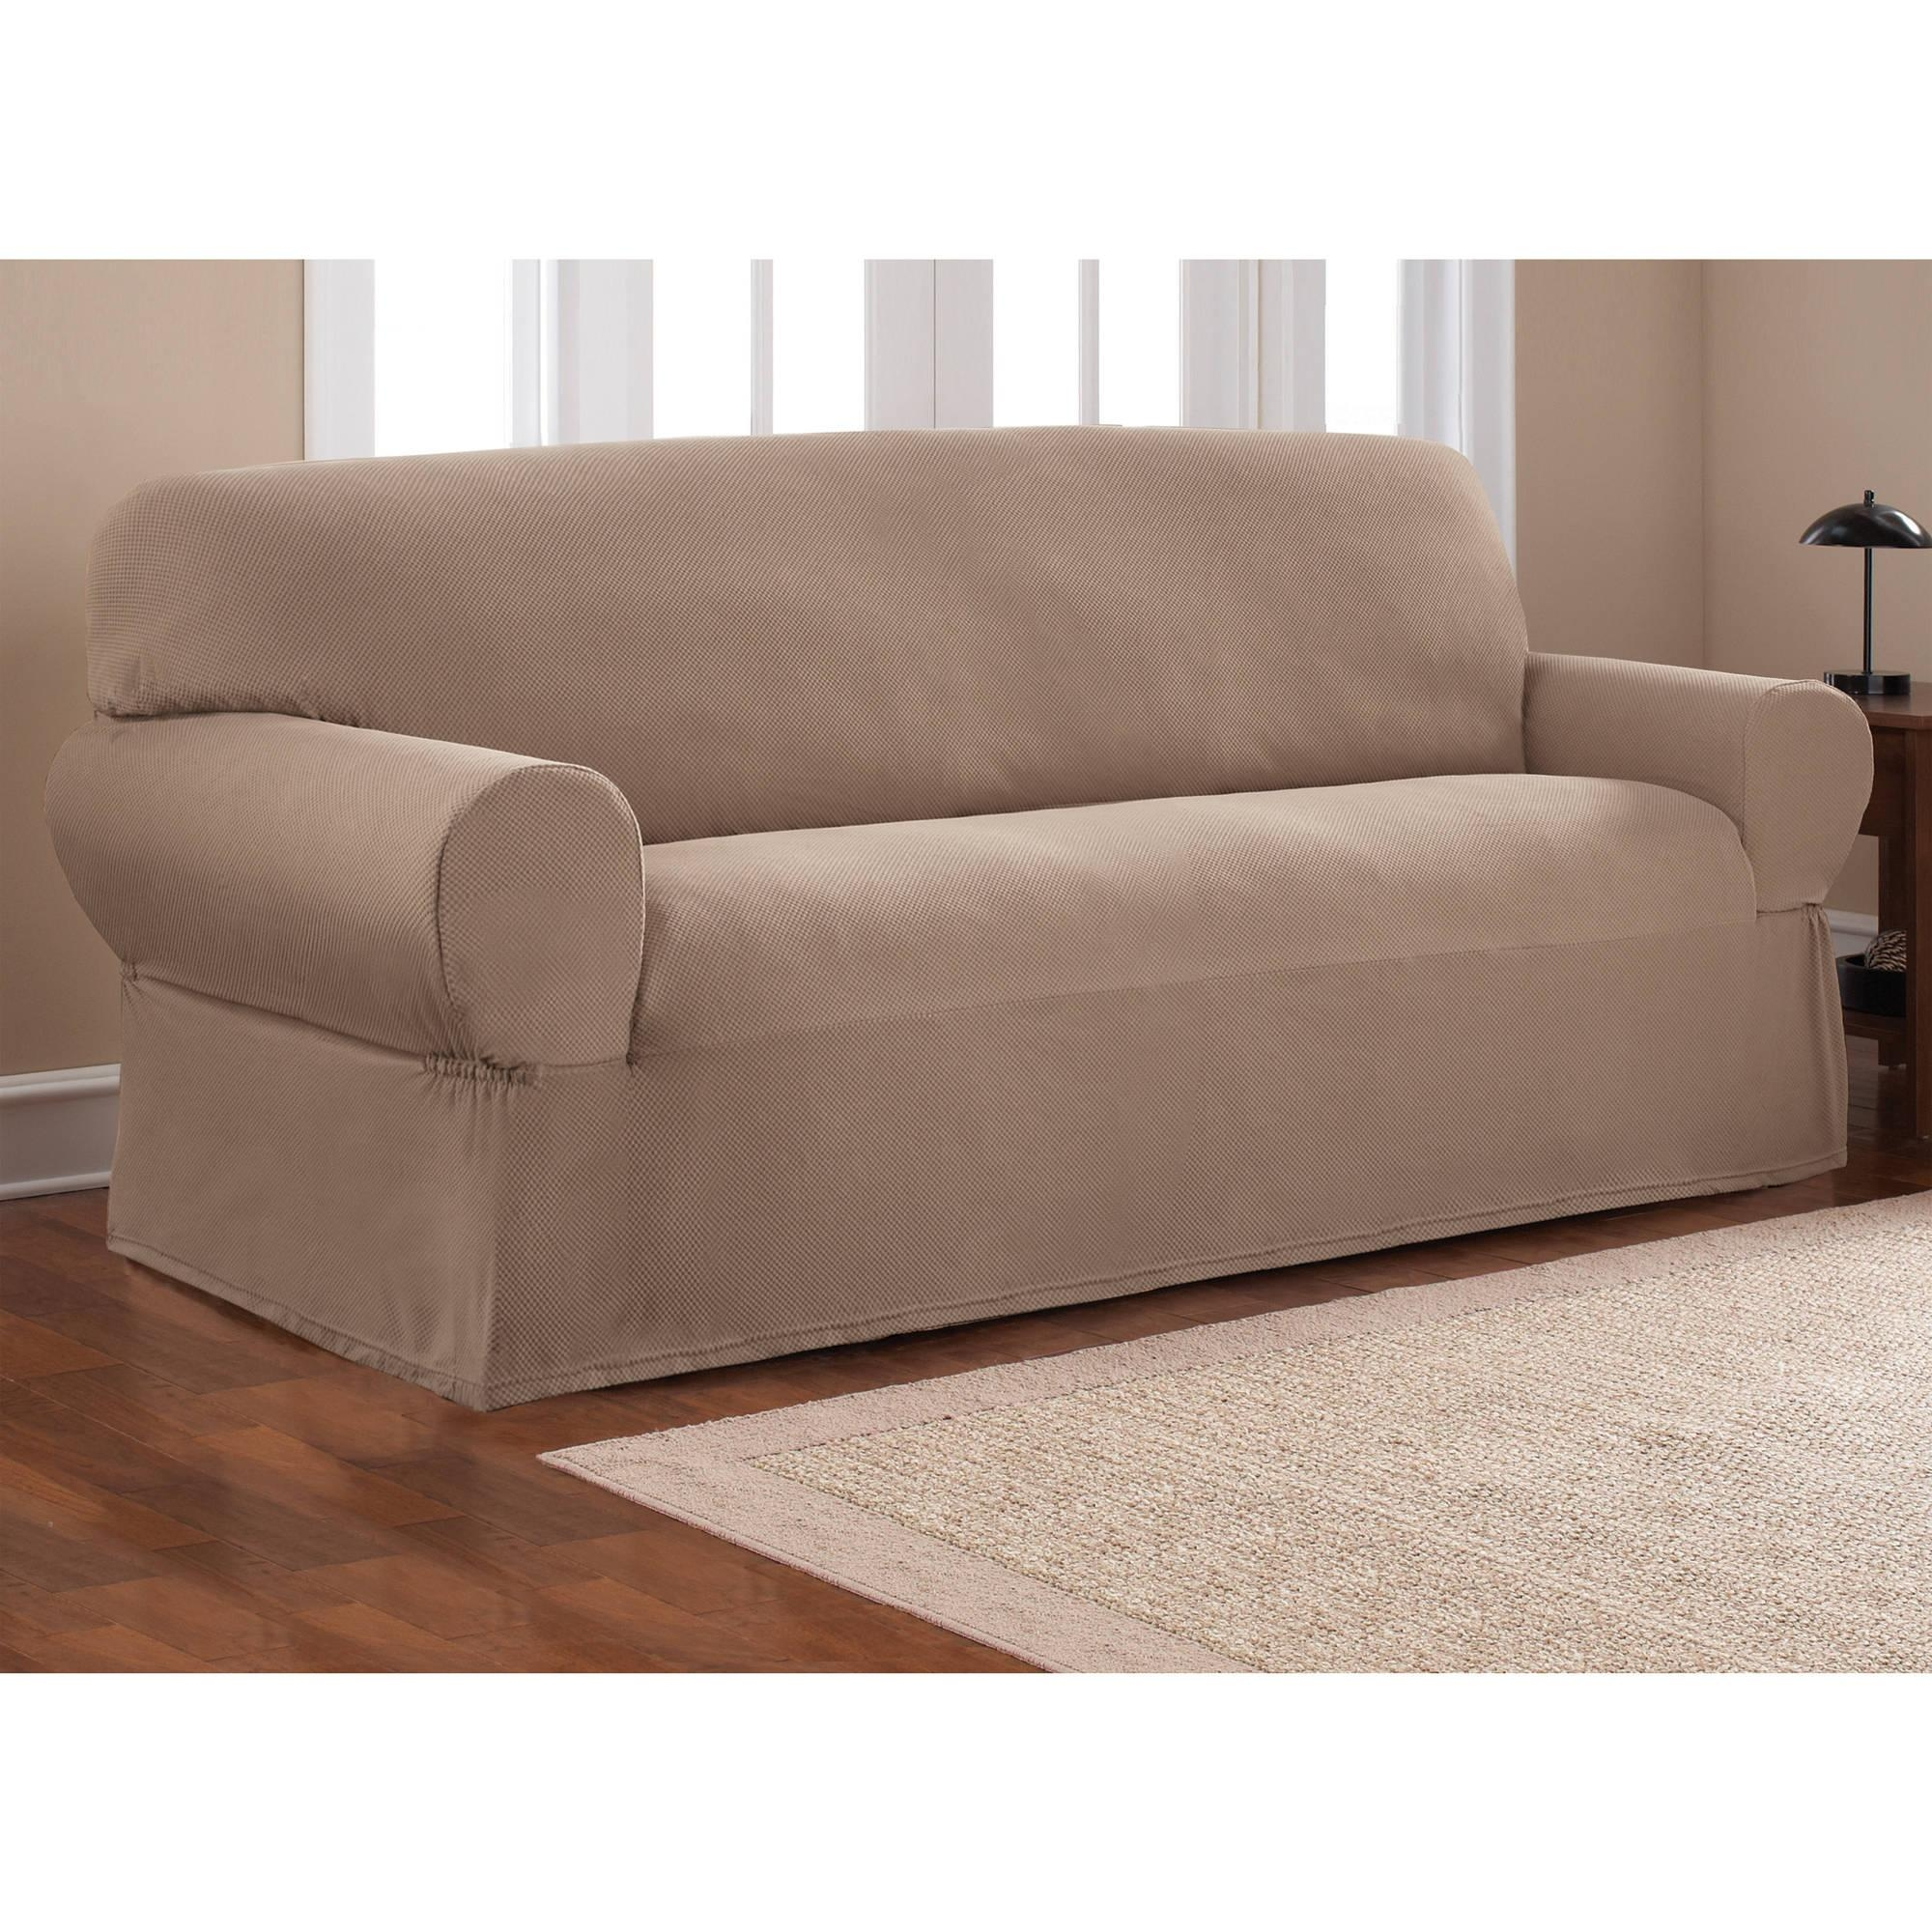 Sofas : Wonderful Club Chair Slipcover Cloth Couch Covers Chaise Inside Large Sofa Slipcovers (View 3 of 23)